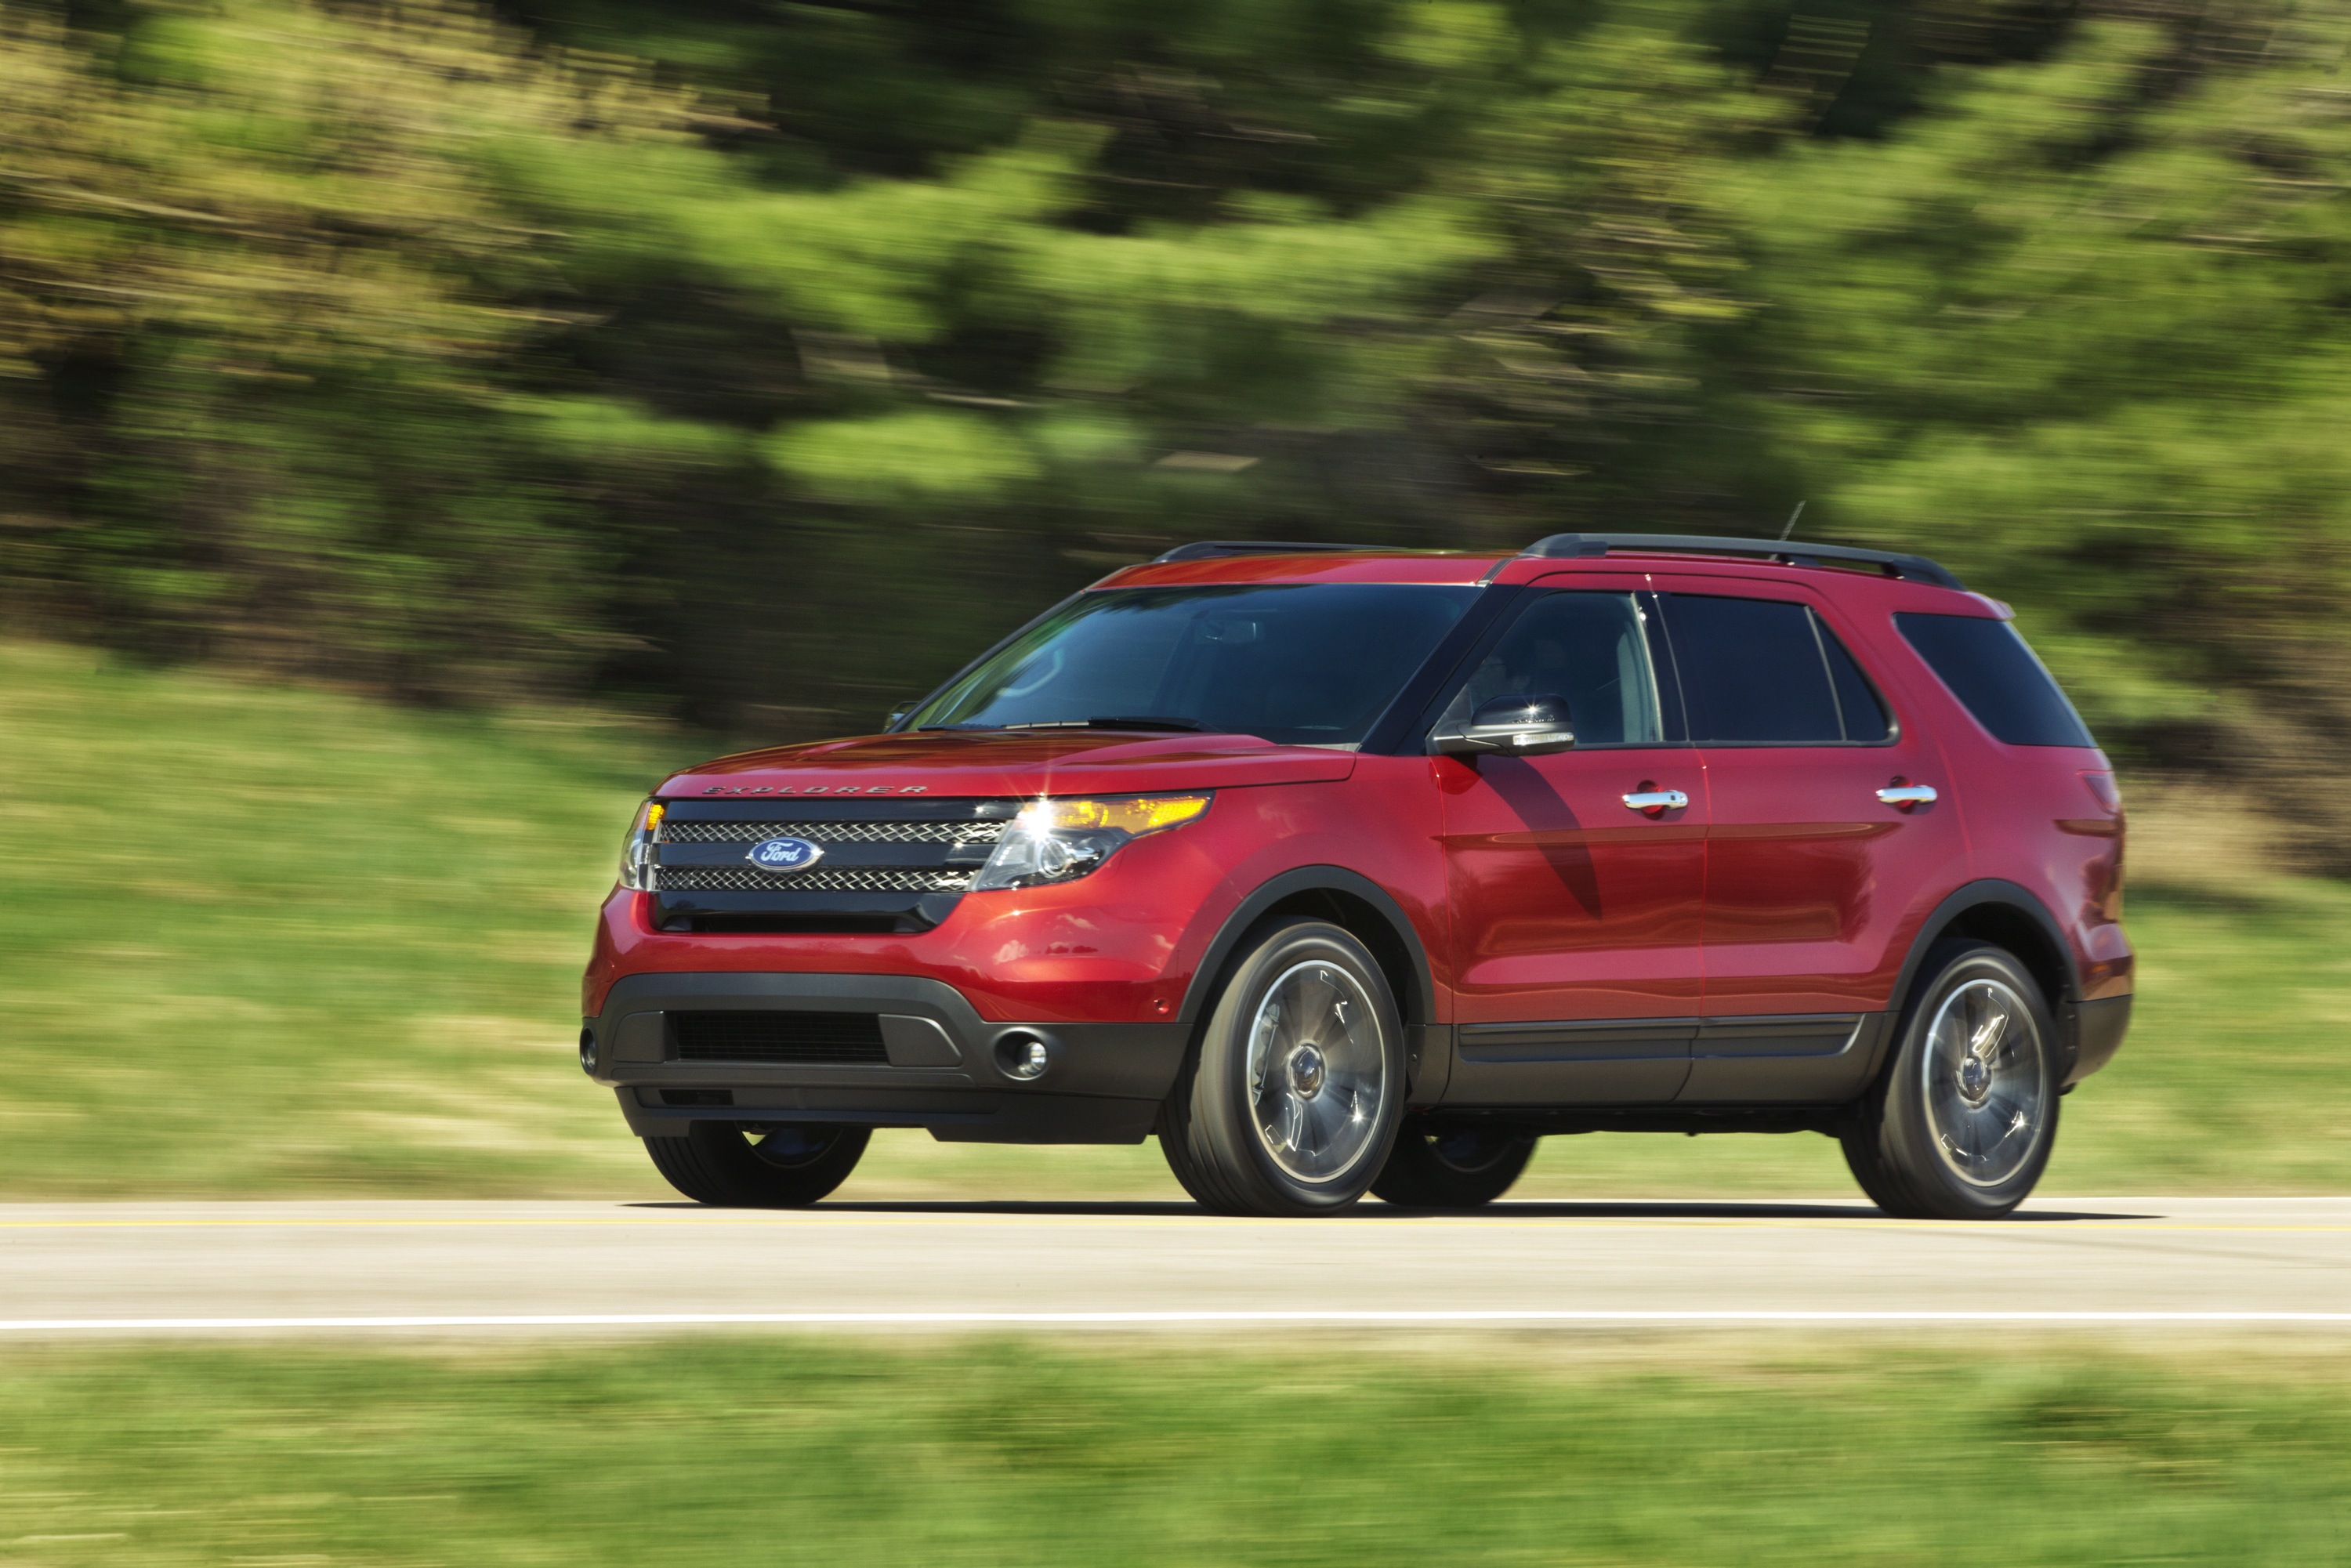 2011 2013 Ford Explorer Recalled For Steering Gear Glitch Fuse Box Diagram 2012 Prius